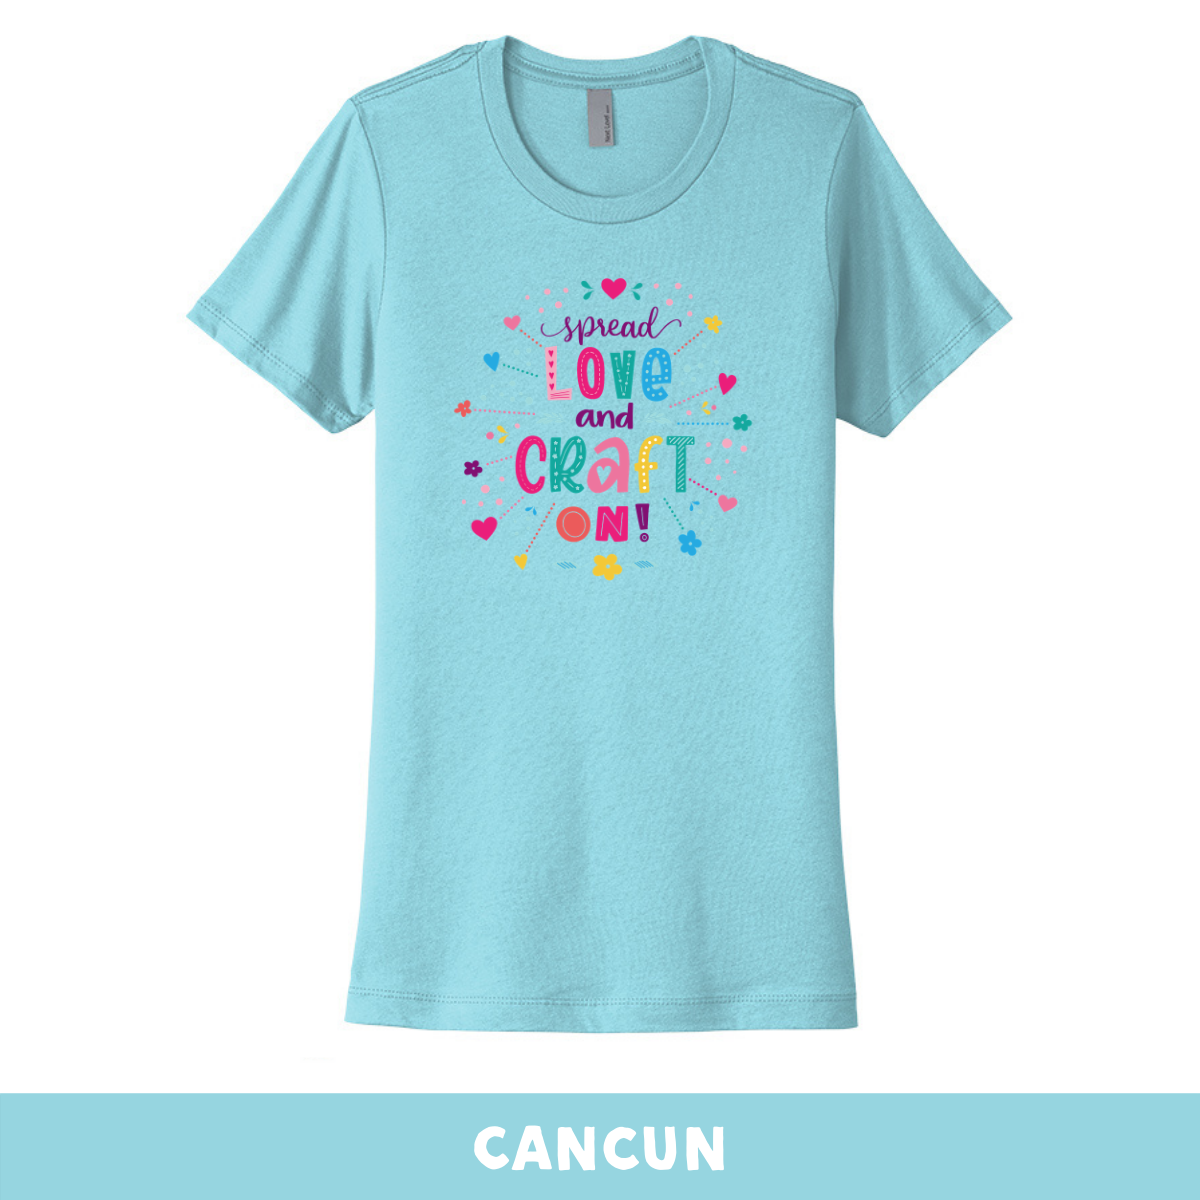 Cancun - Crew Neck Boyfriend Tee - Spread Love and Craft On